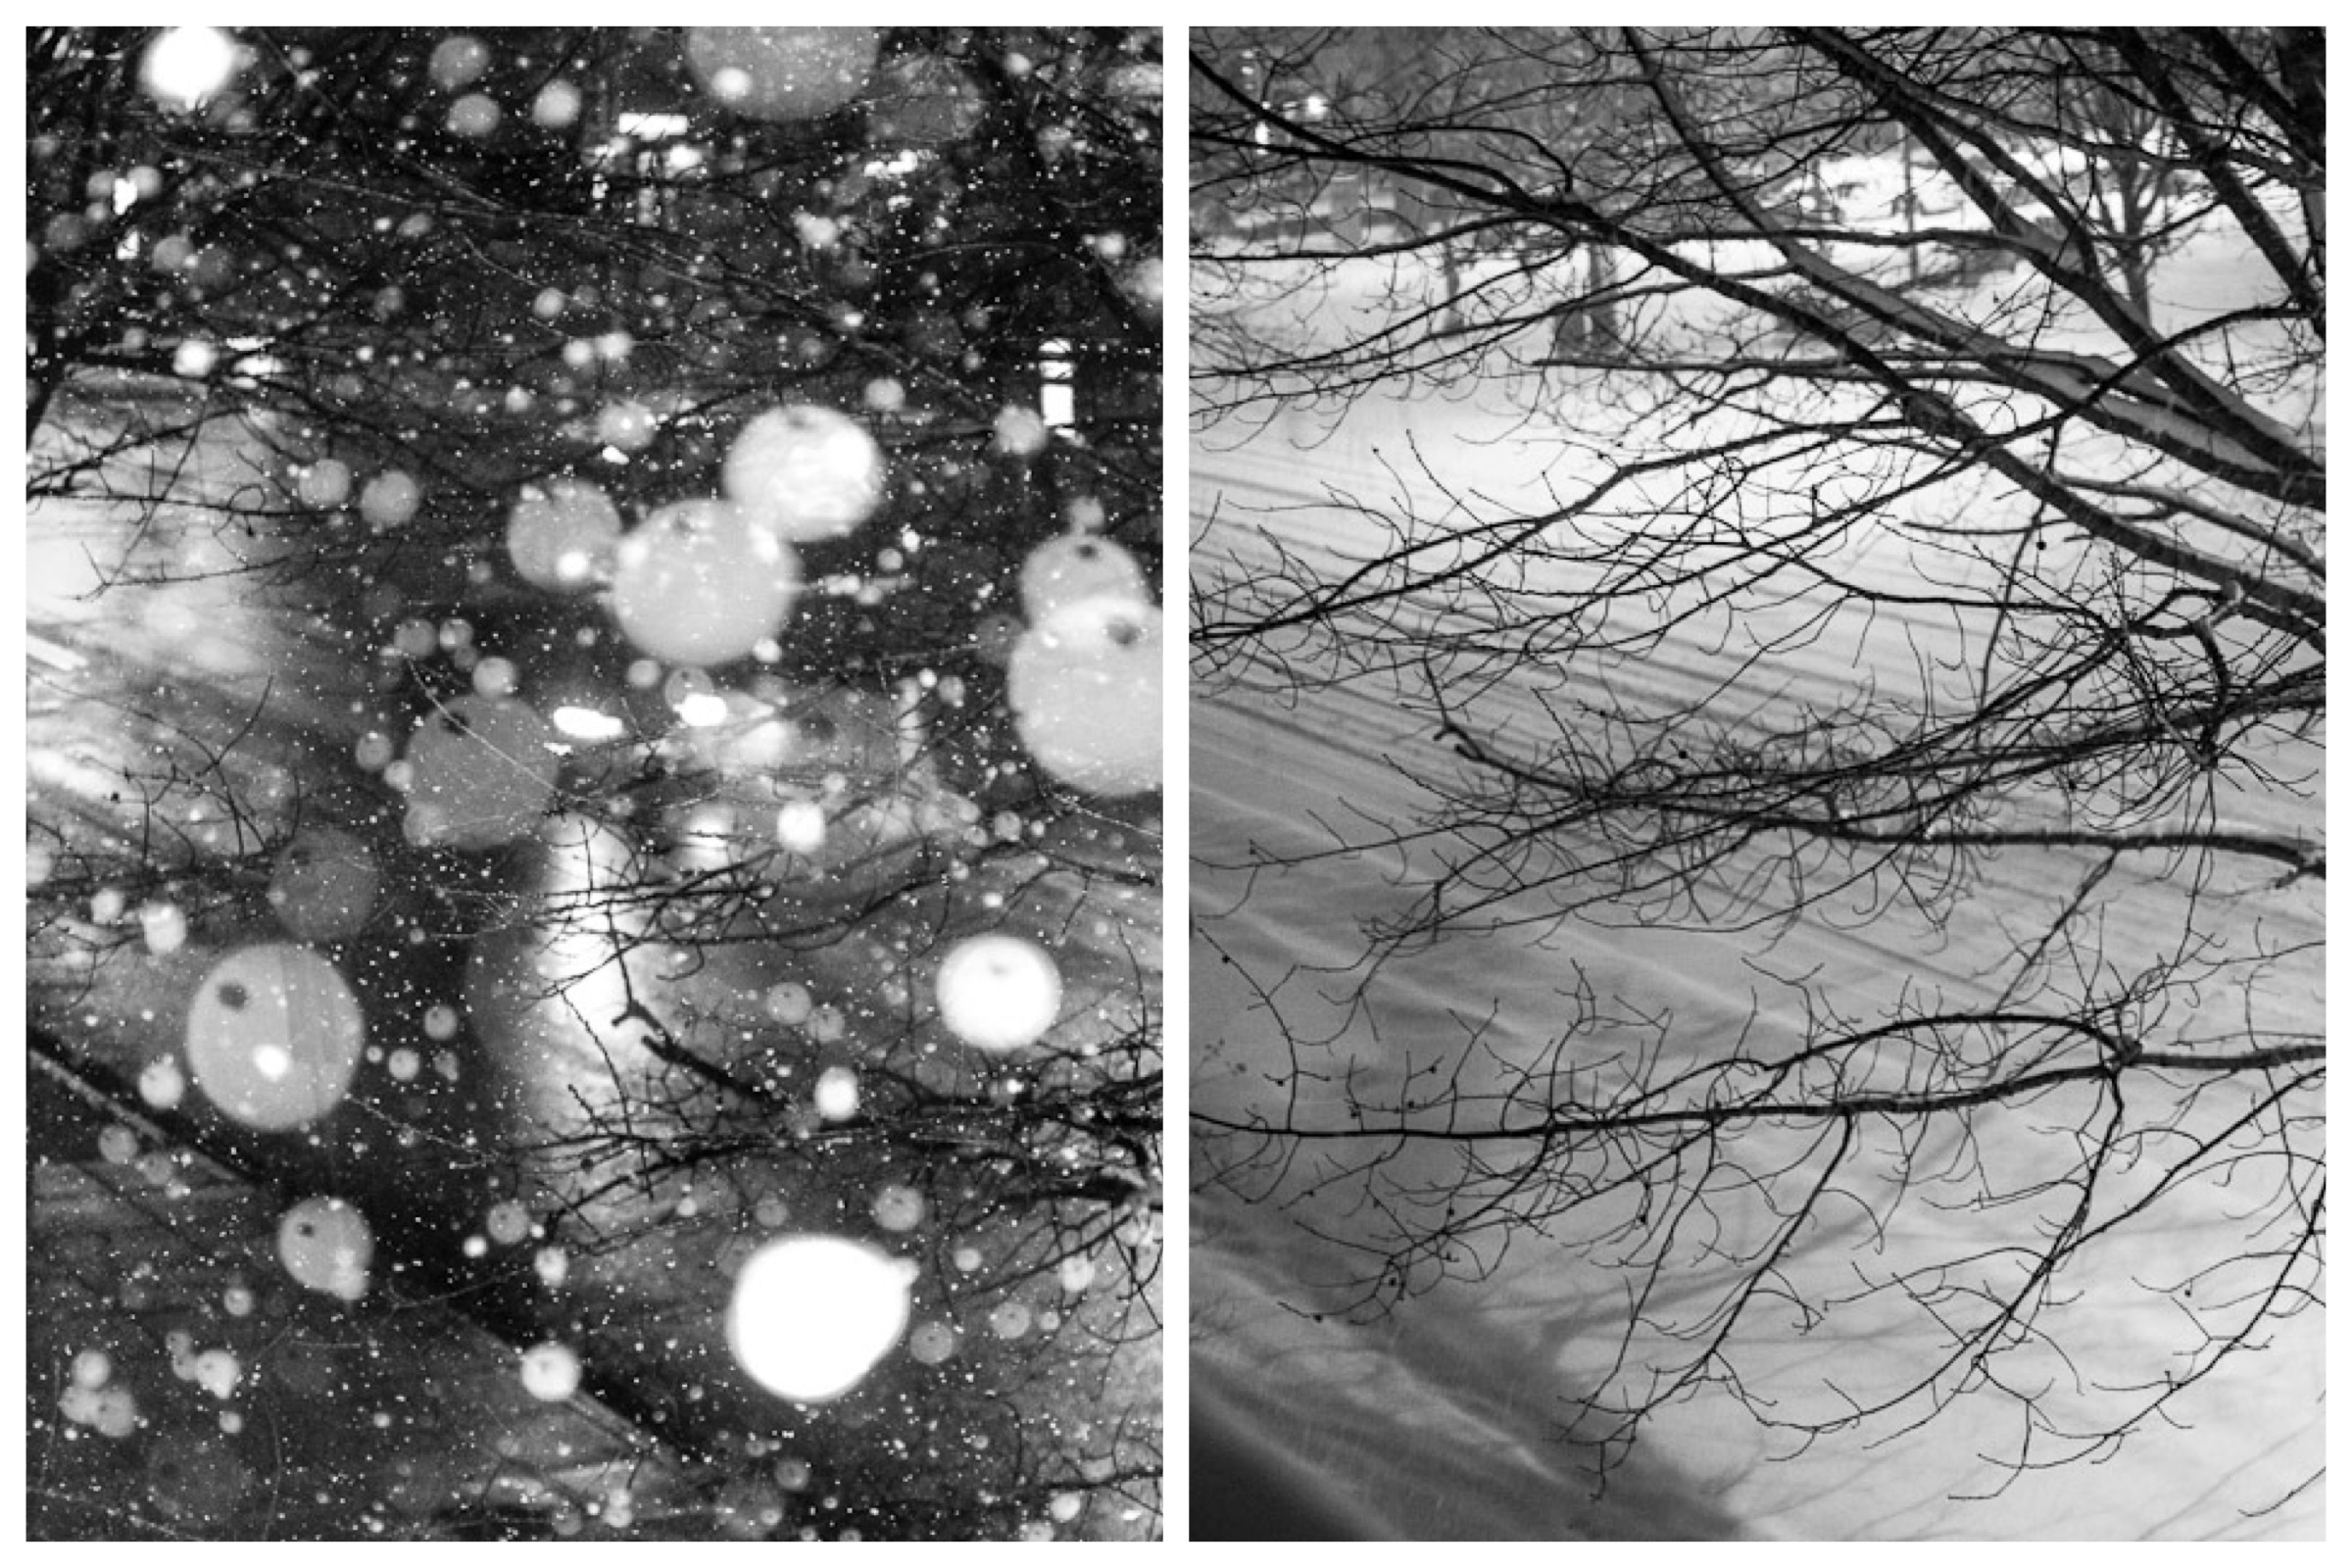 Light December snow on the right; Heavy February snowstorm on the right